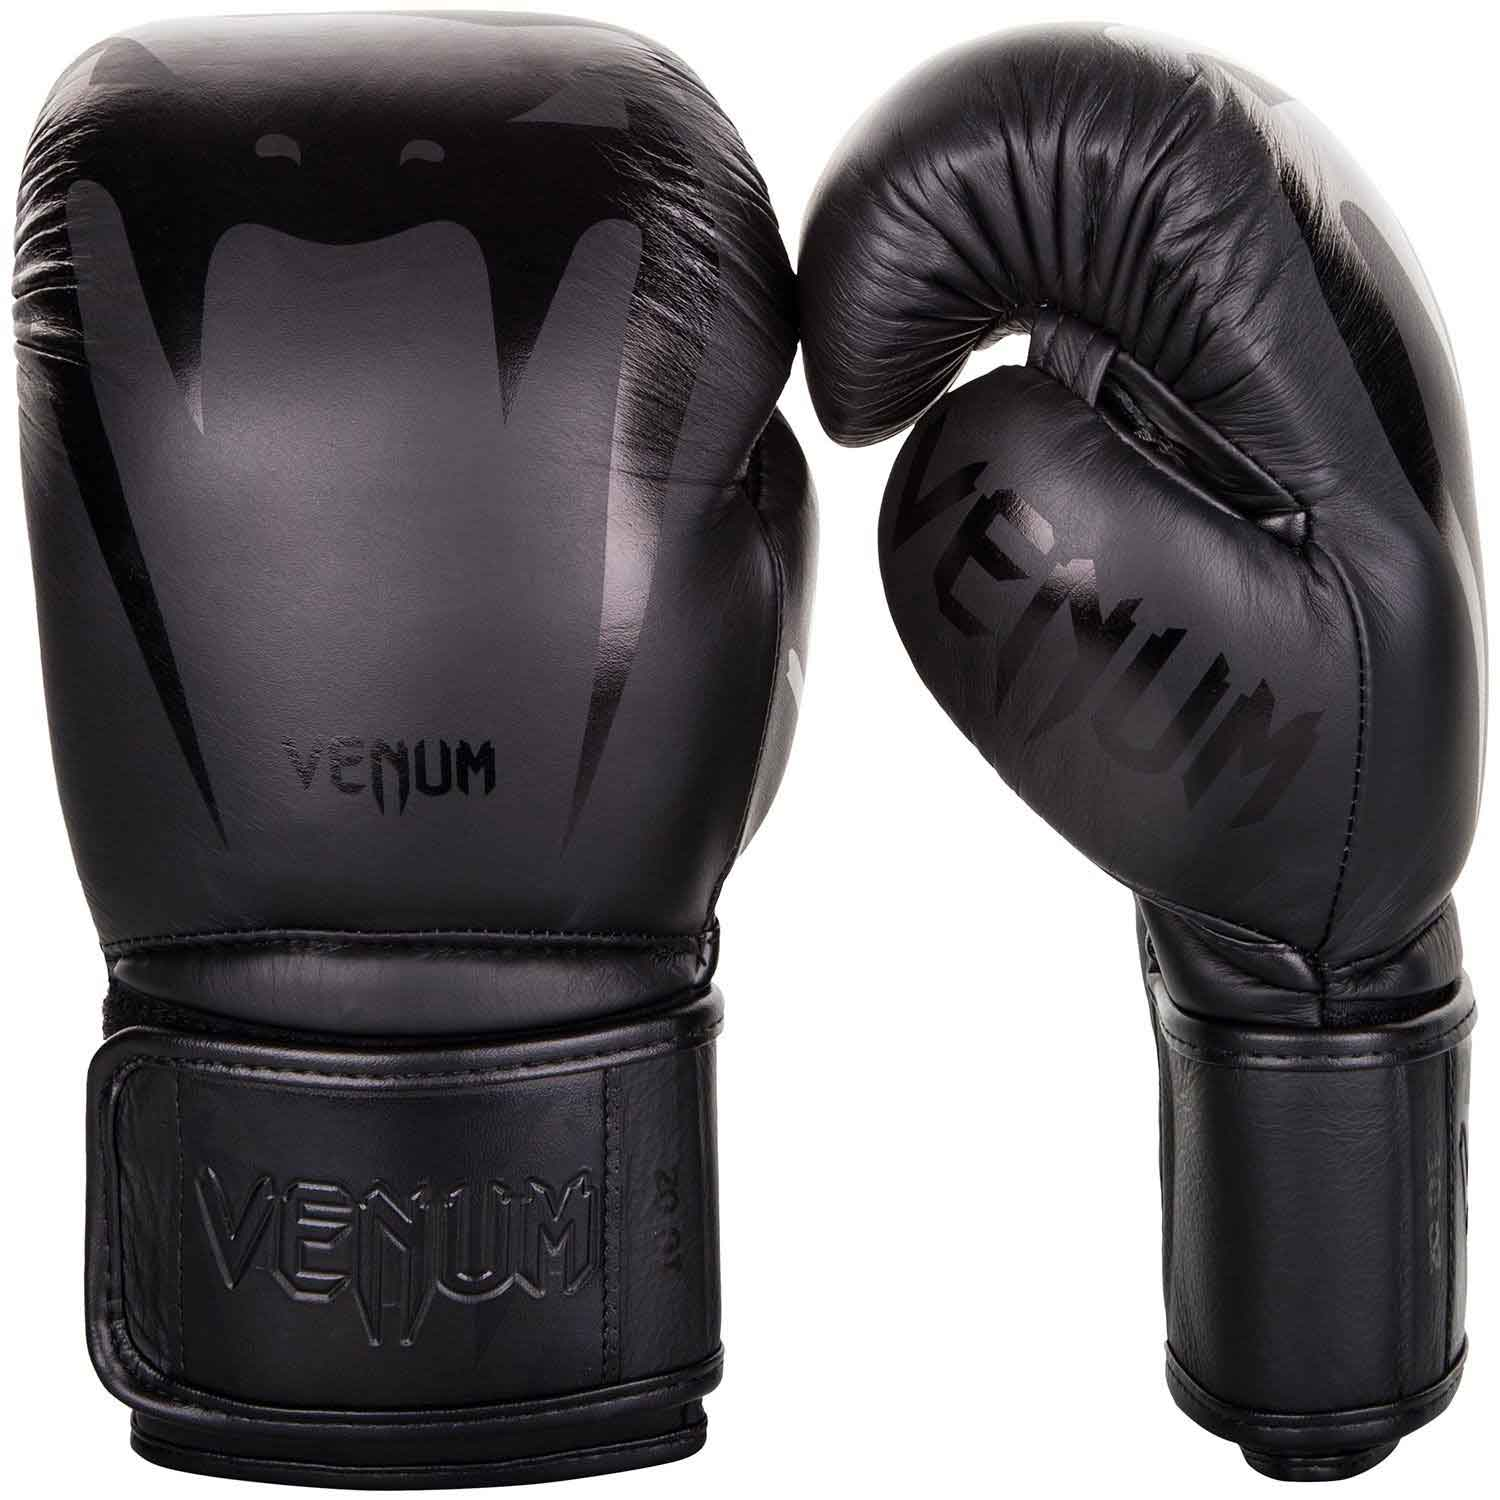 GIANT 3.0 BOXING GLOVES/ジャイアント 3.0 ボクシンググローブ(黒/黒)